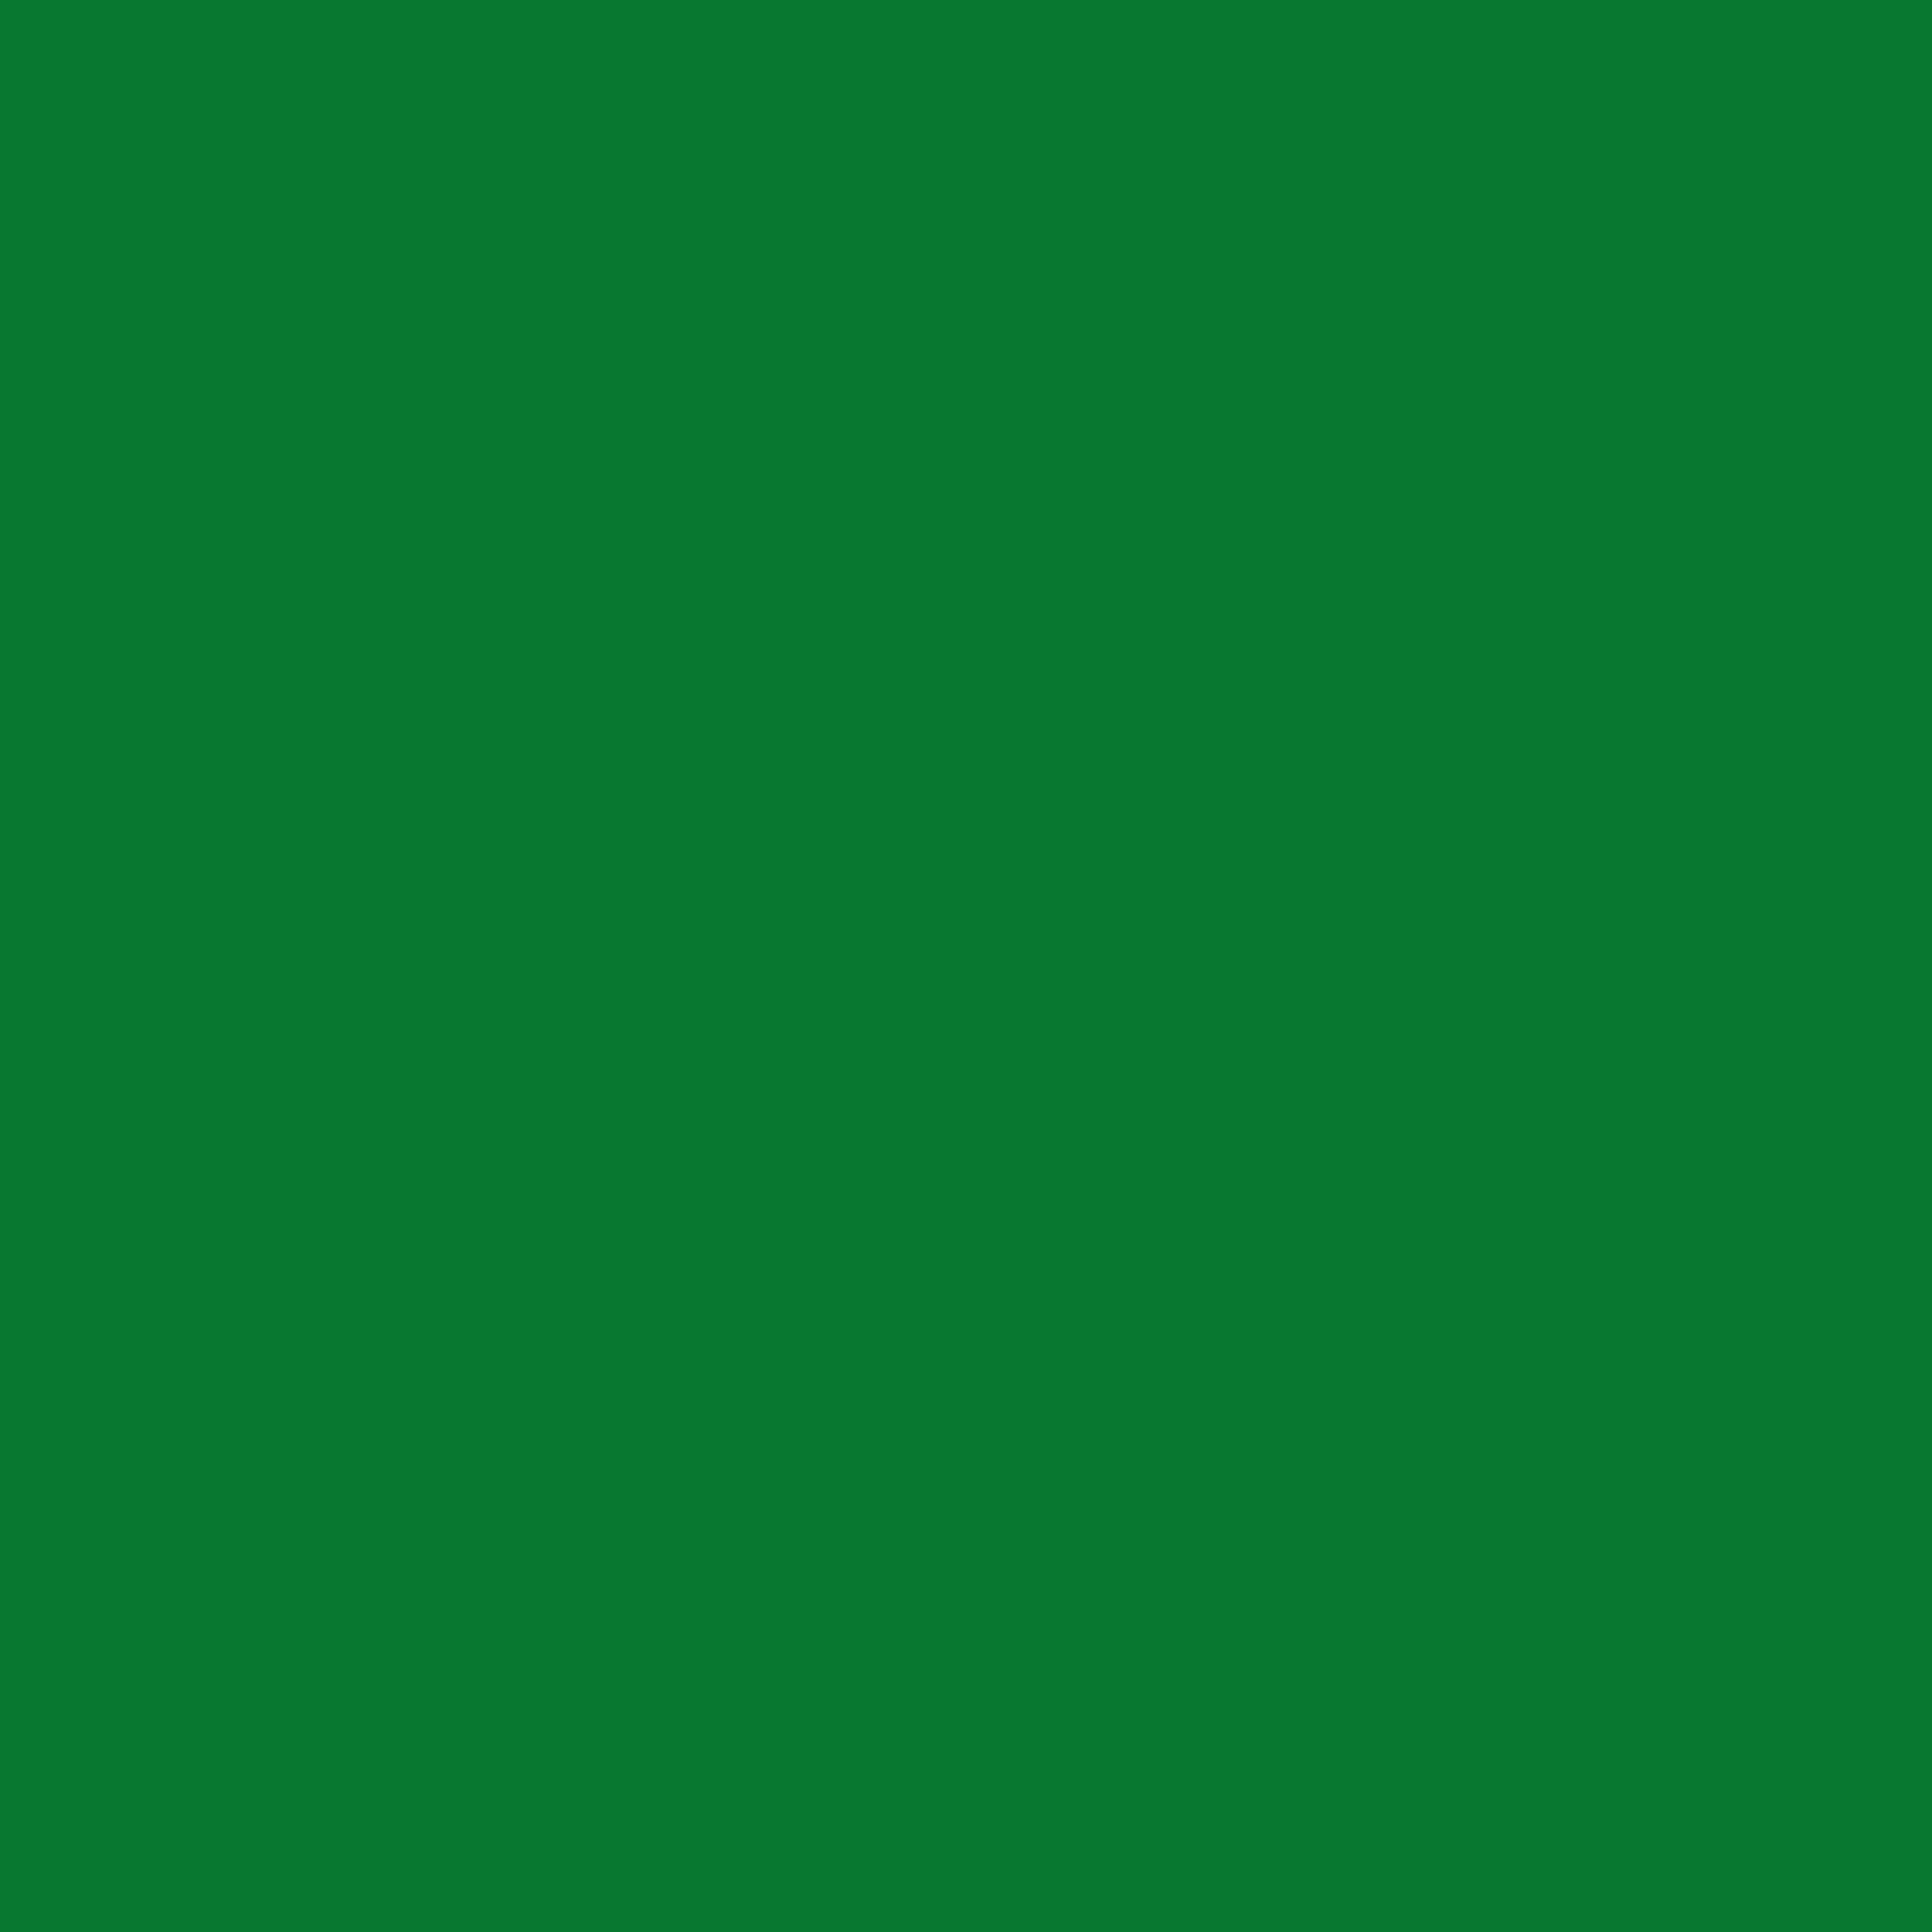 2048x2048 La Salle Green Solid Color Background